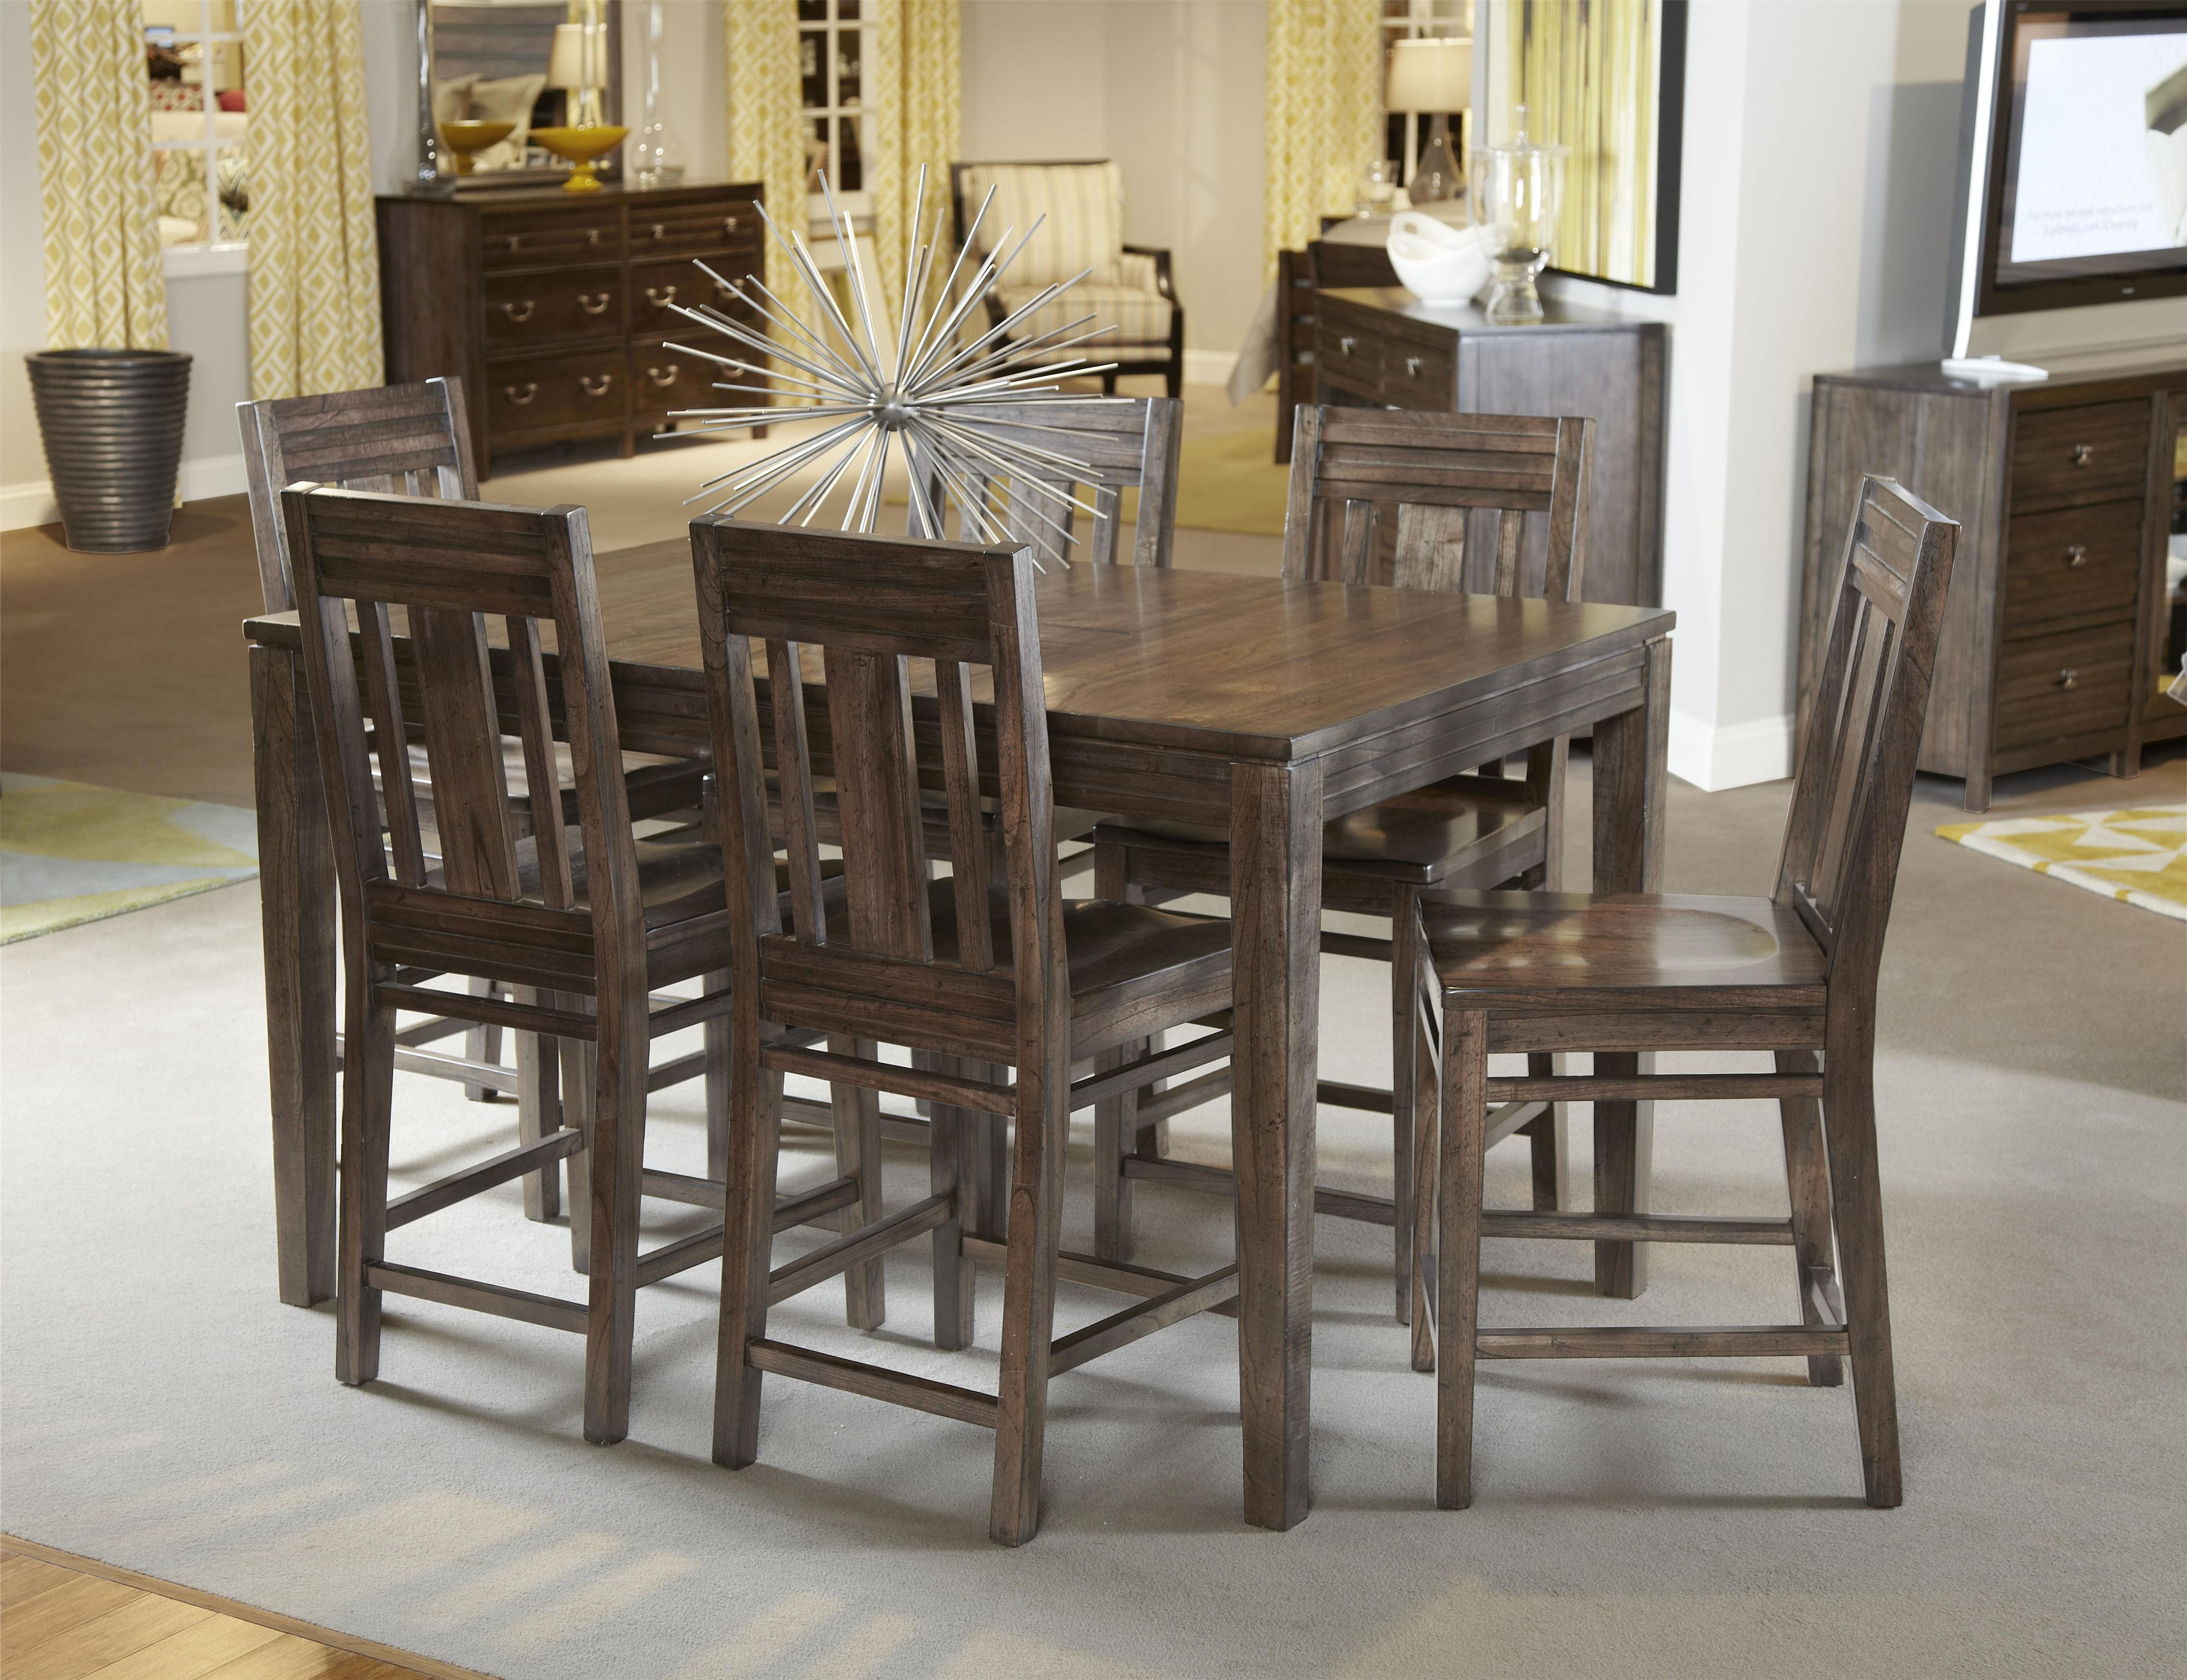 Seven Piece Casual Counter Height Dining Set by Kincaid Furniture